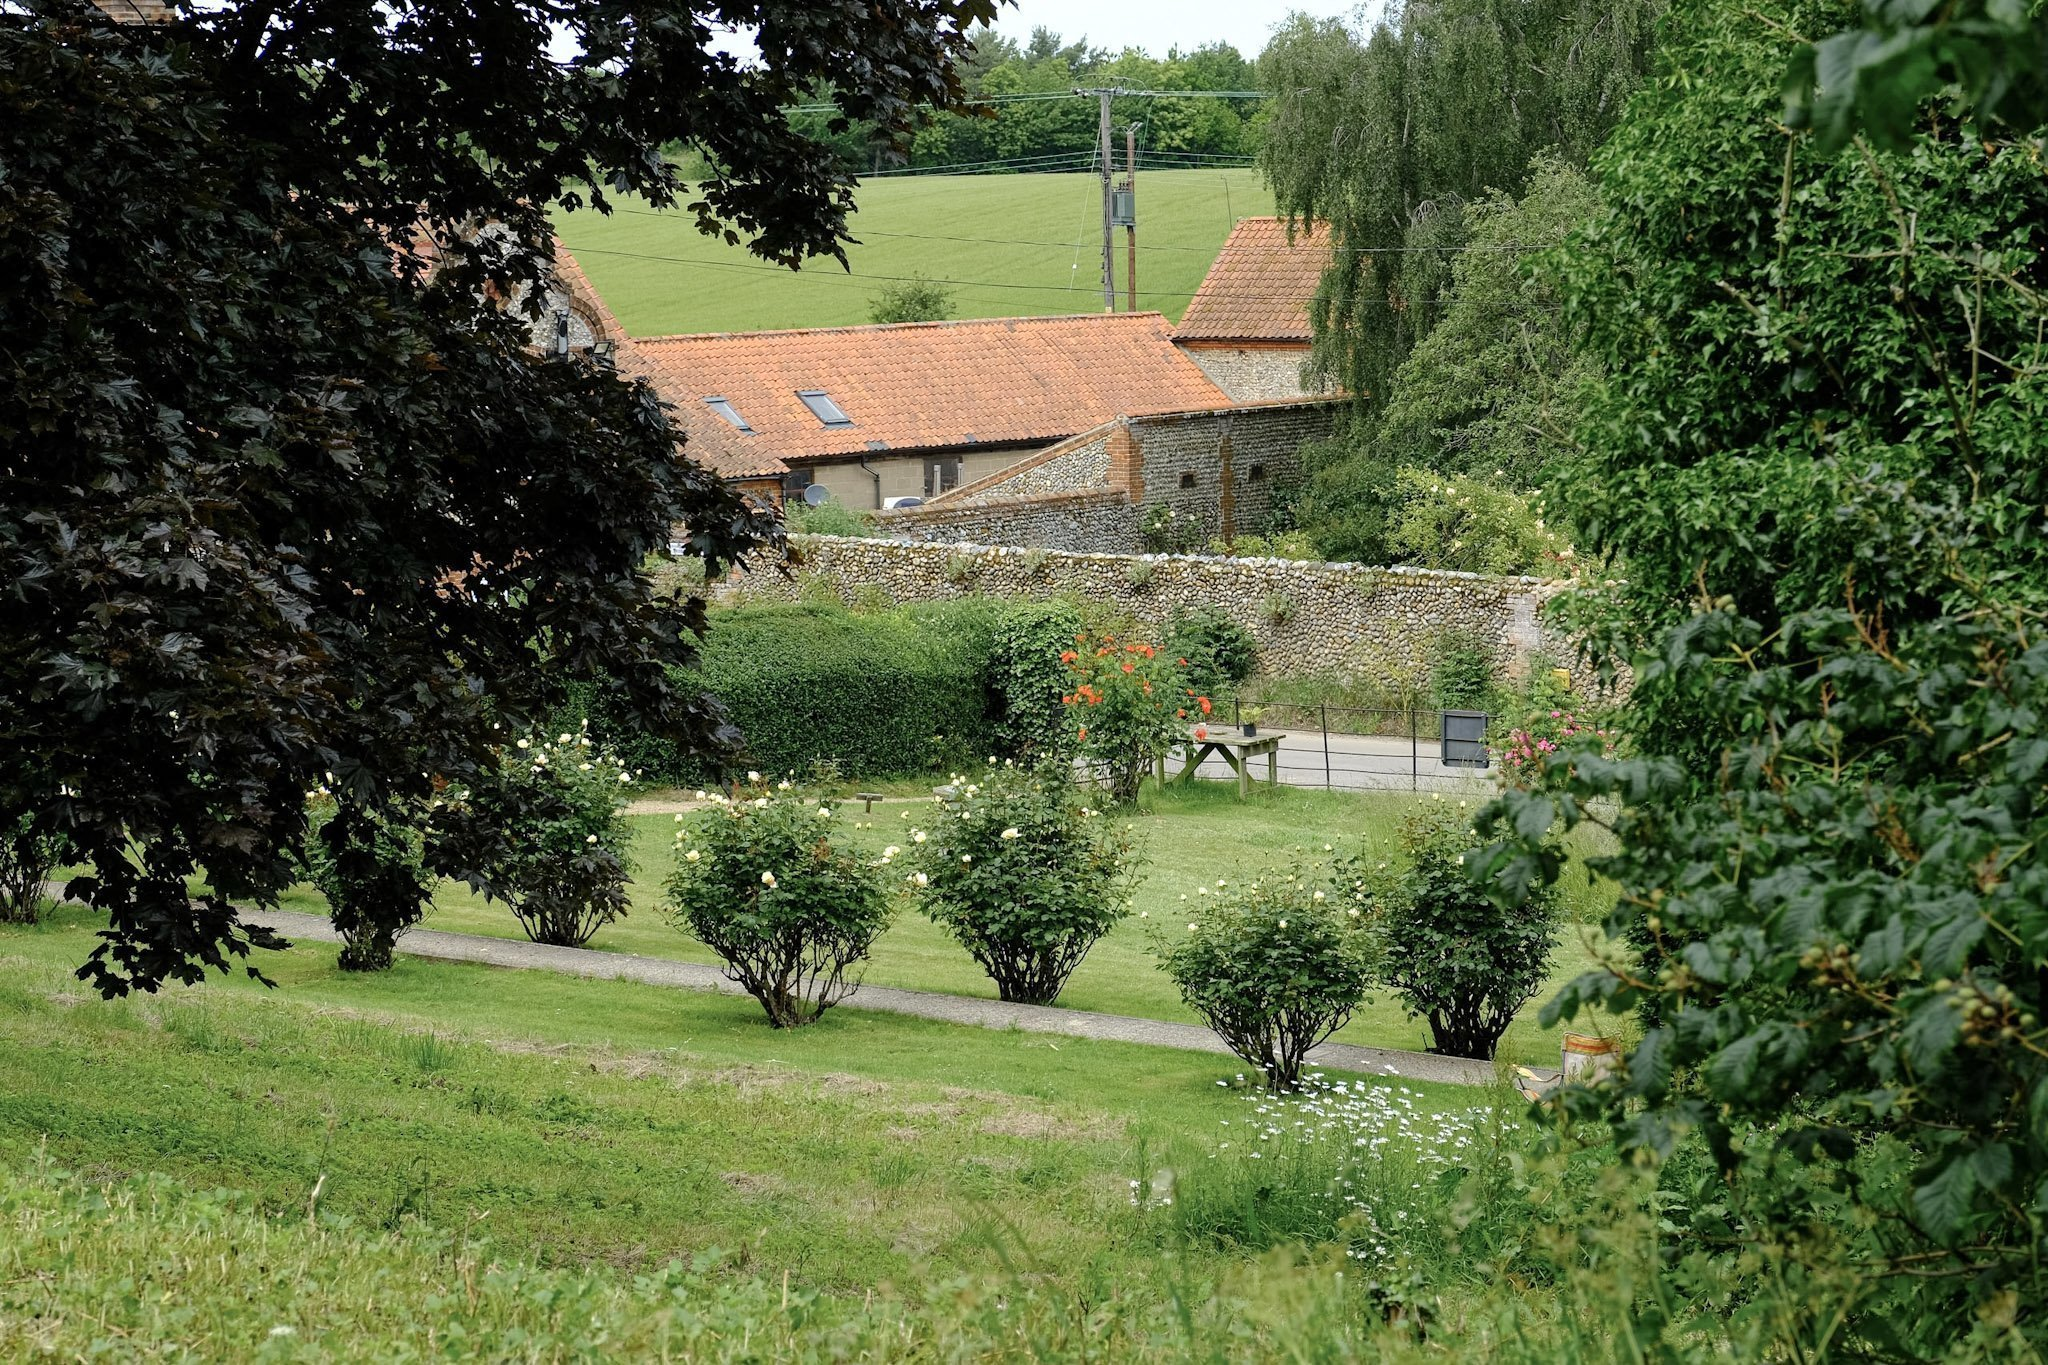 Glandford is a quiet hamlet situated in the Glaven Valley, in an Area of Outstanding Natural Beauty.